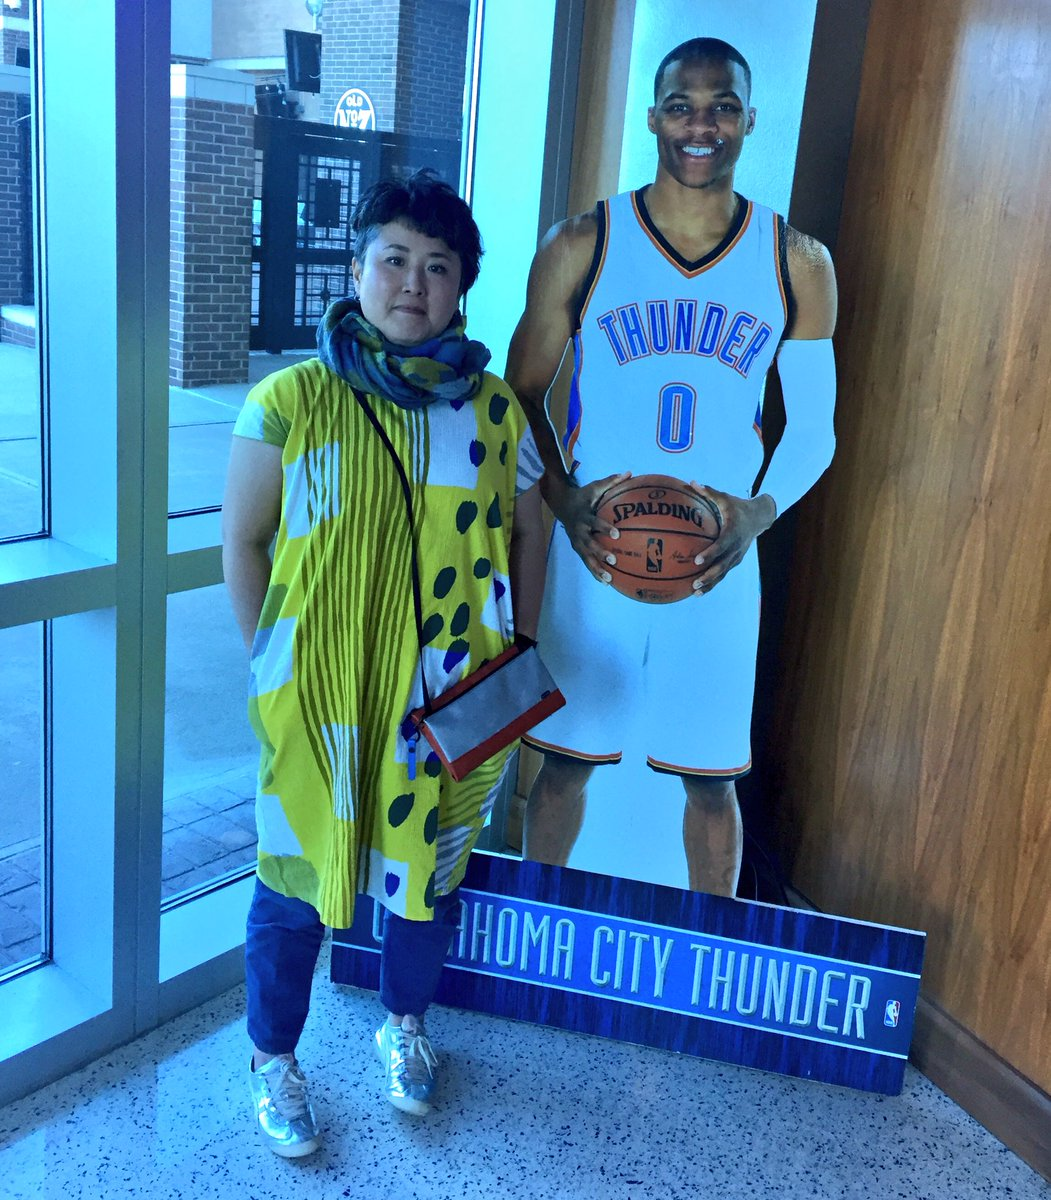 """Nanae Yamano, the Thunder fan artist in Japan, didn't get to meet Russell Westbrook when she visited Oklahoma City. But last night she went to his event in Tokyo. And then this happened. """"Finally, @7A_mountain""""  says, """"I met himhttps://t.co/DnAvWswe9J."""""""